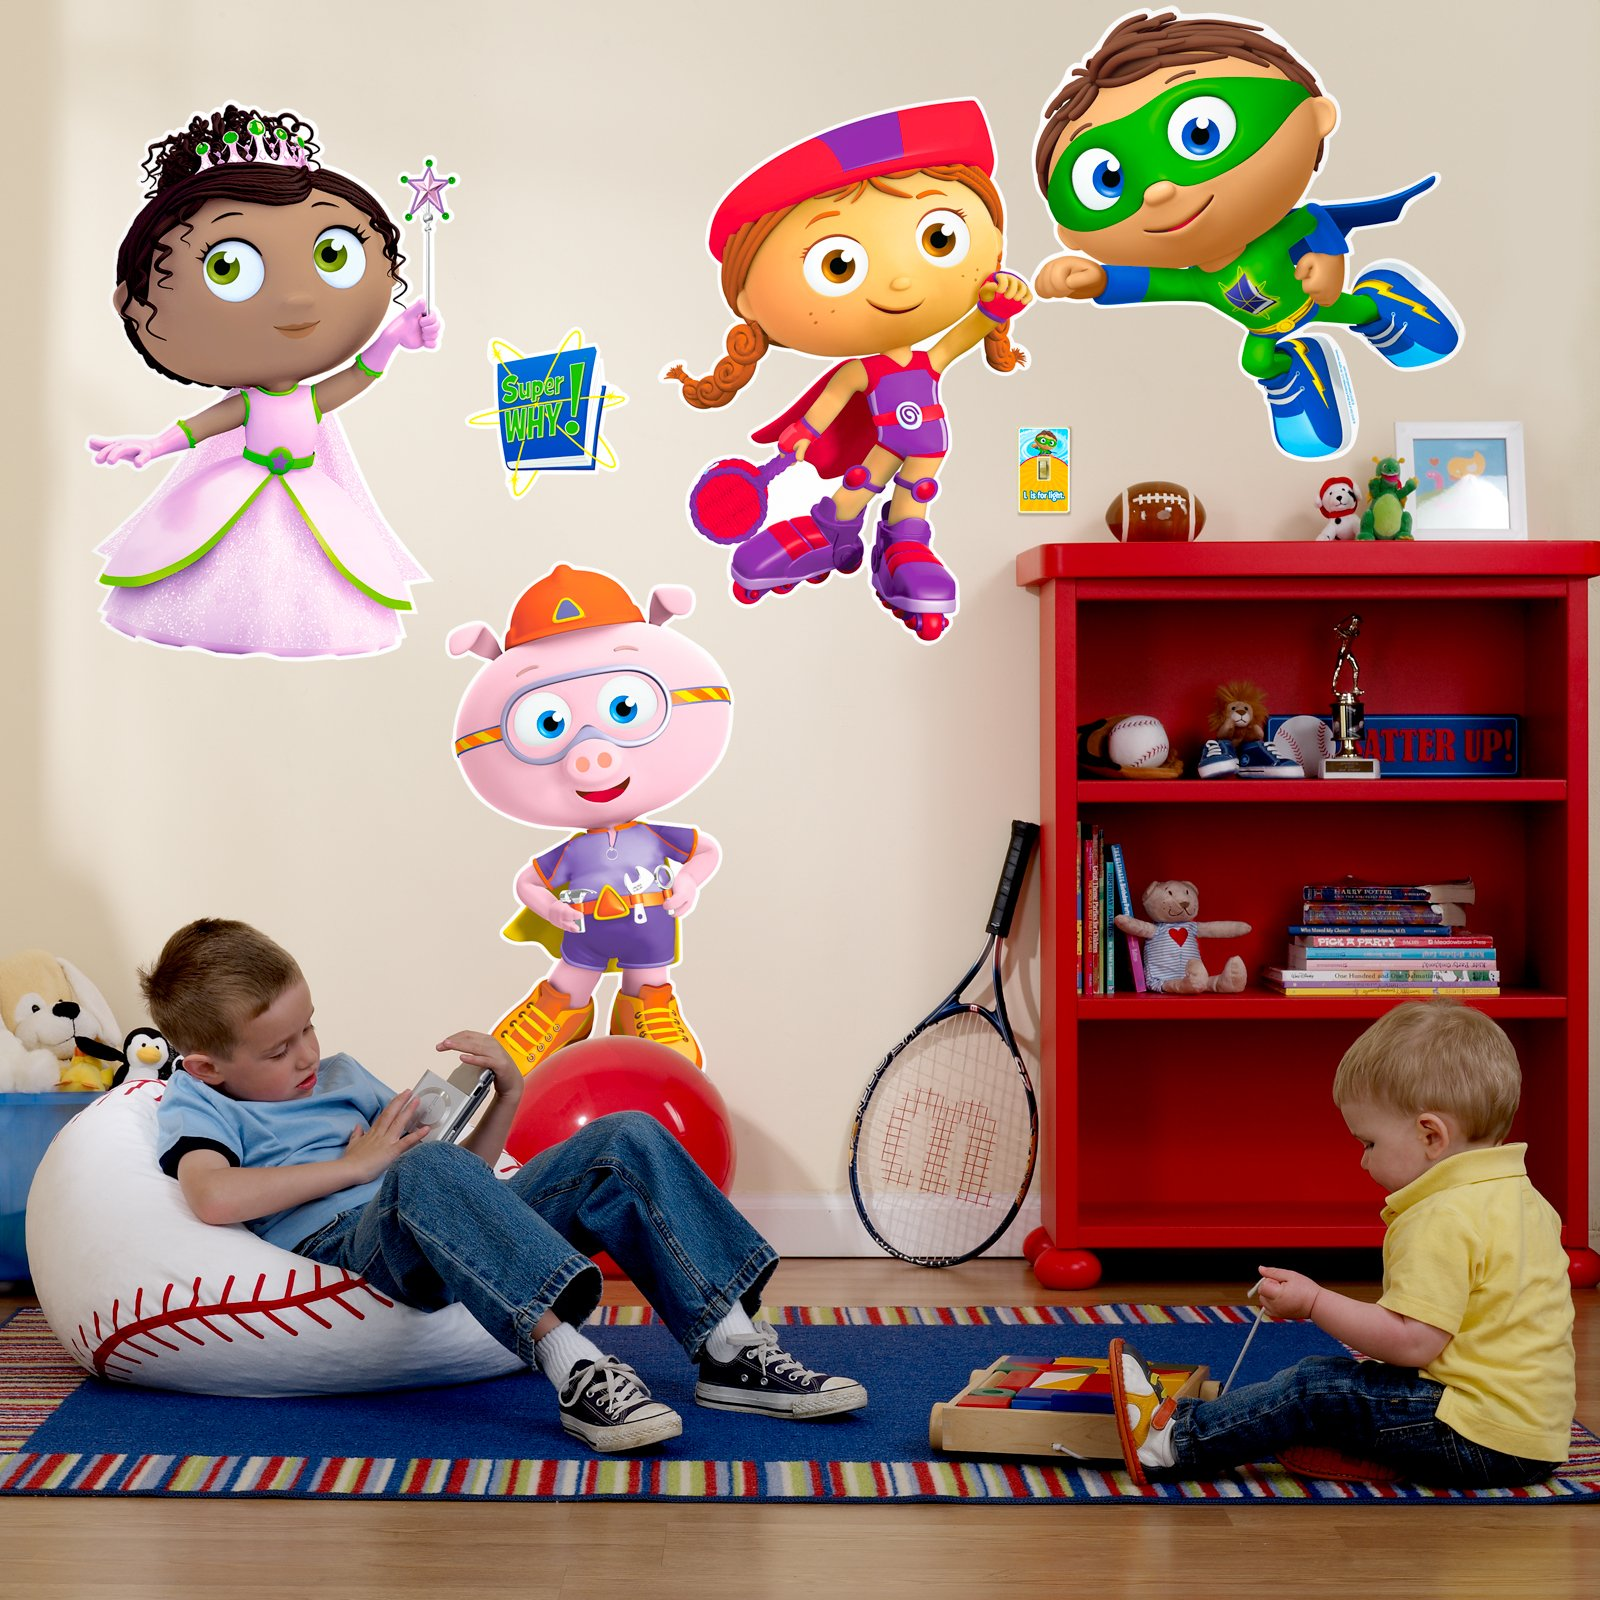 BirthdayExpress Super Why Room Decor - Giant Wall Decals